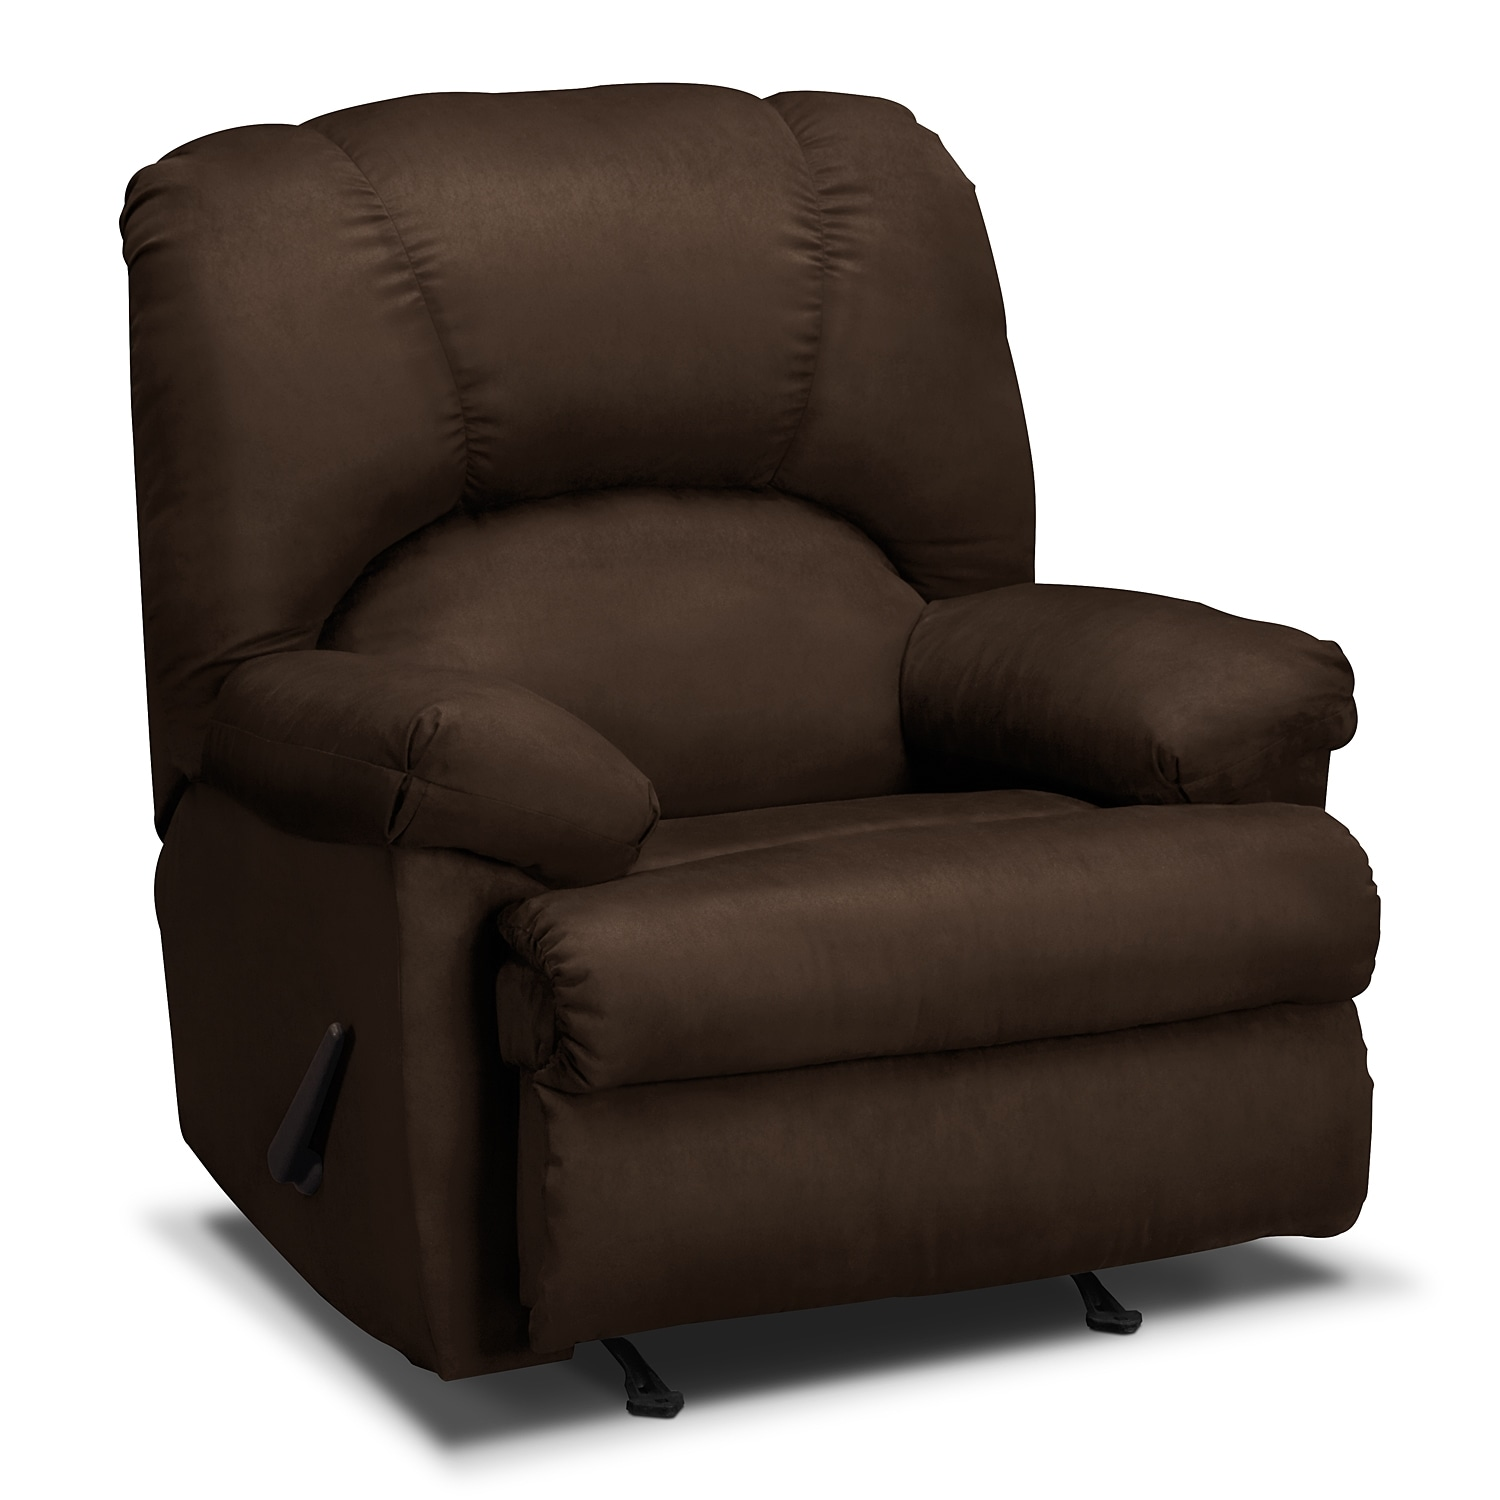 Reclining Rocking Chair Quincy Rocker Recliner Chocolate Value City Furniture